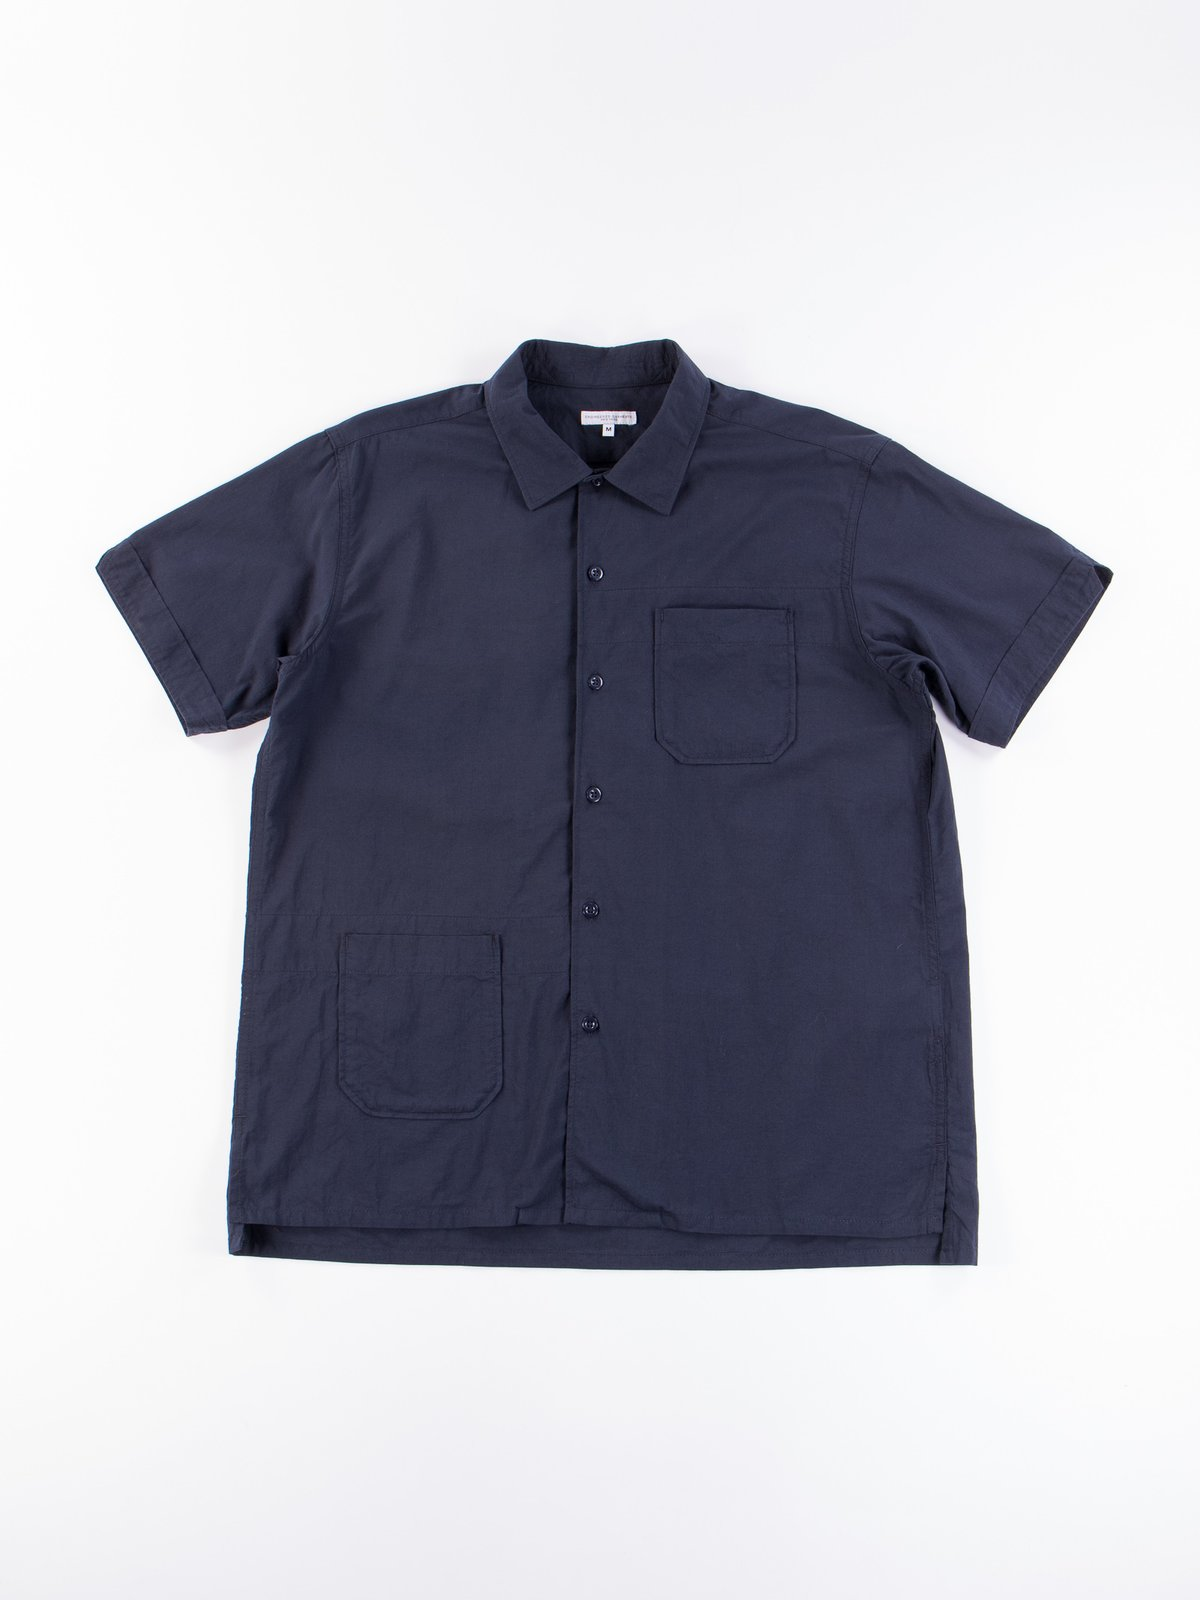 Navy Solid Cotton Lawn Camp Shirt  - Image 1